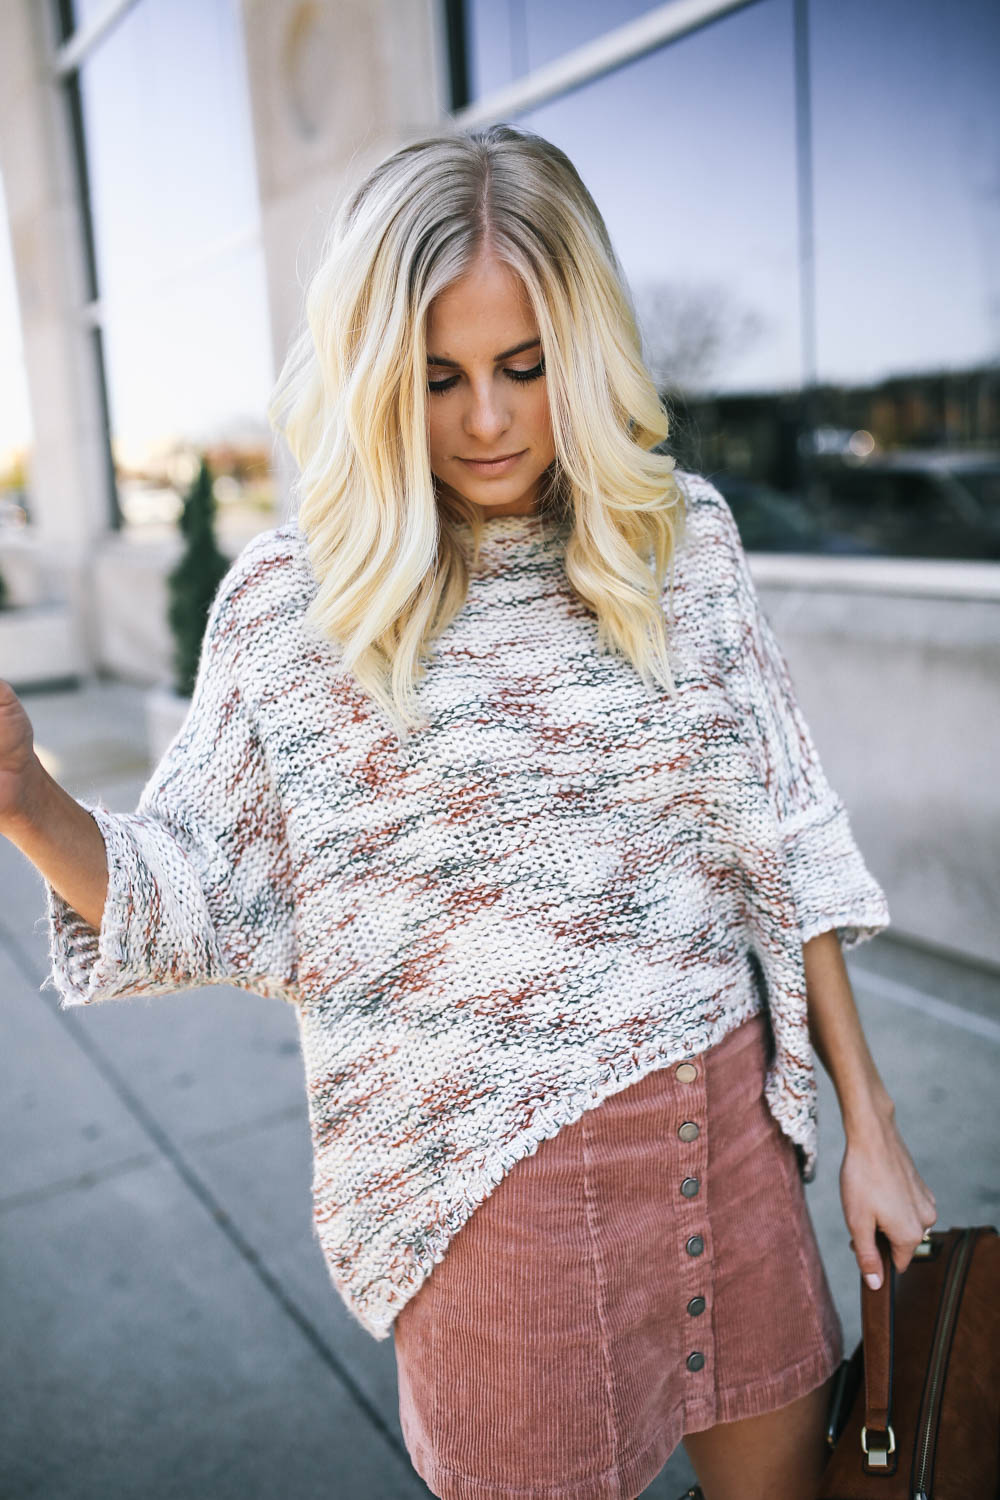 dolman-sweater-and-skirt-23.jpg